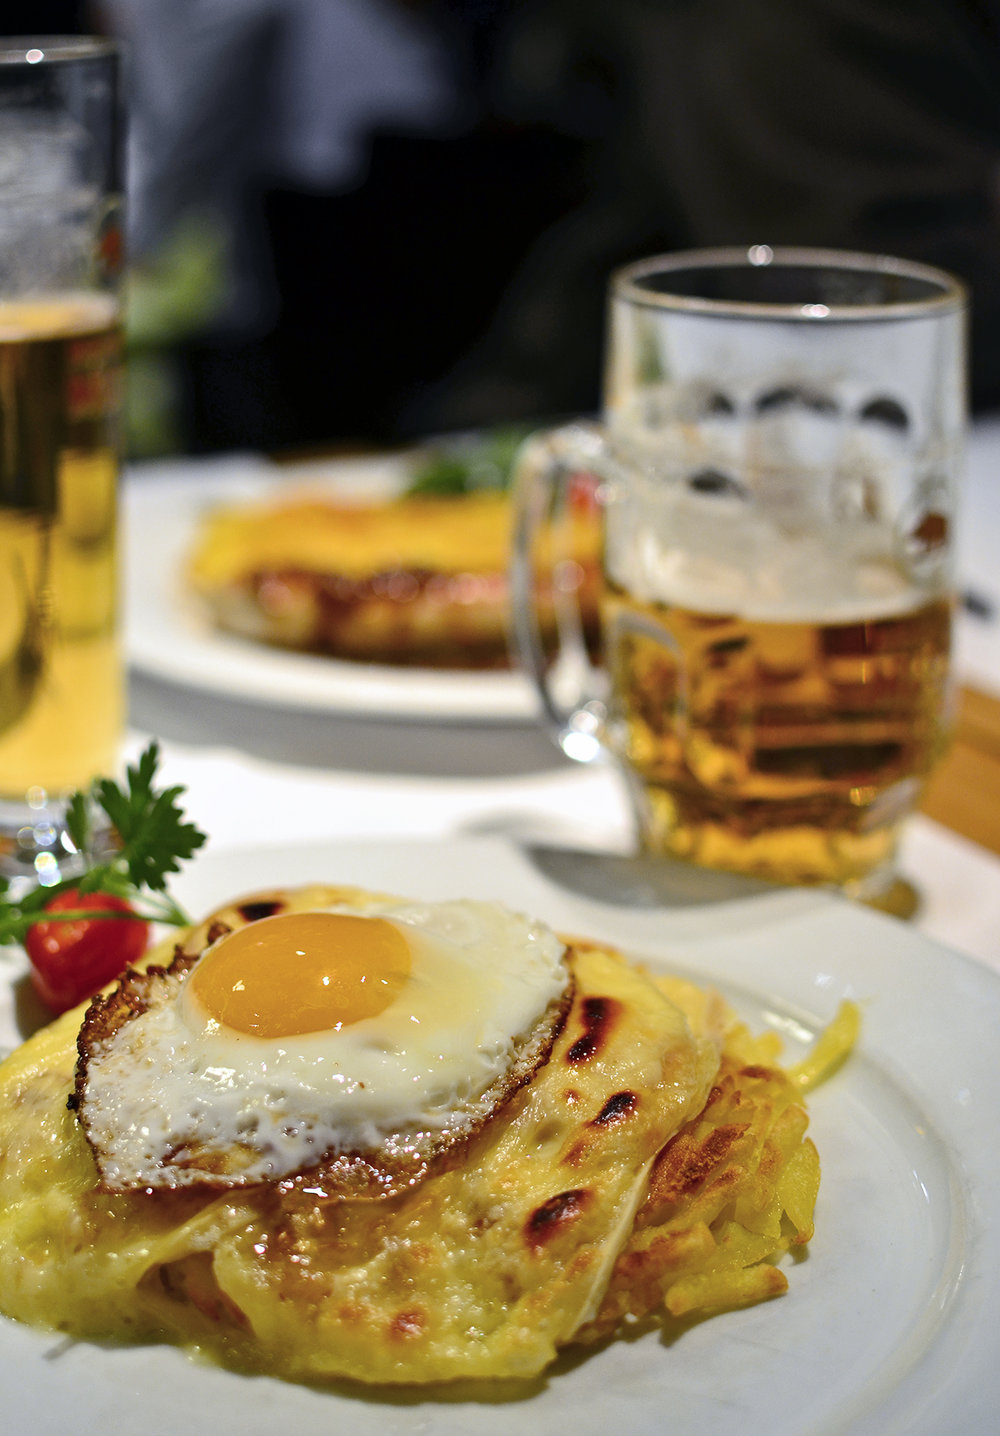 Beer, Raclette cheese and Rösti